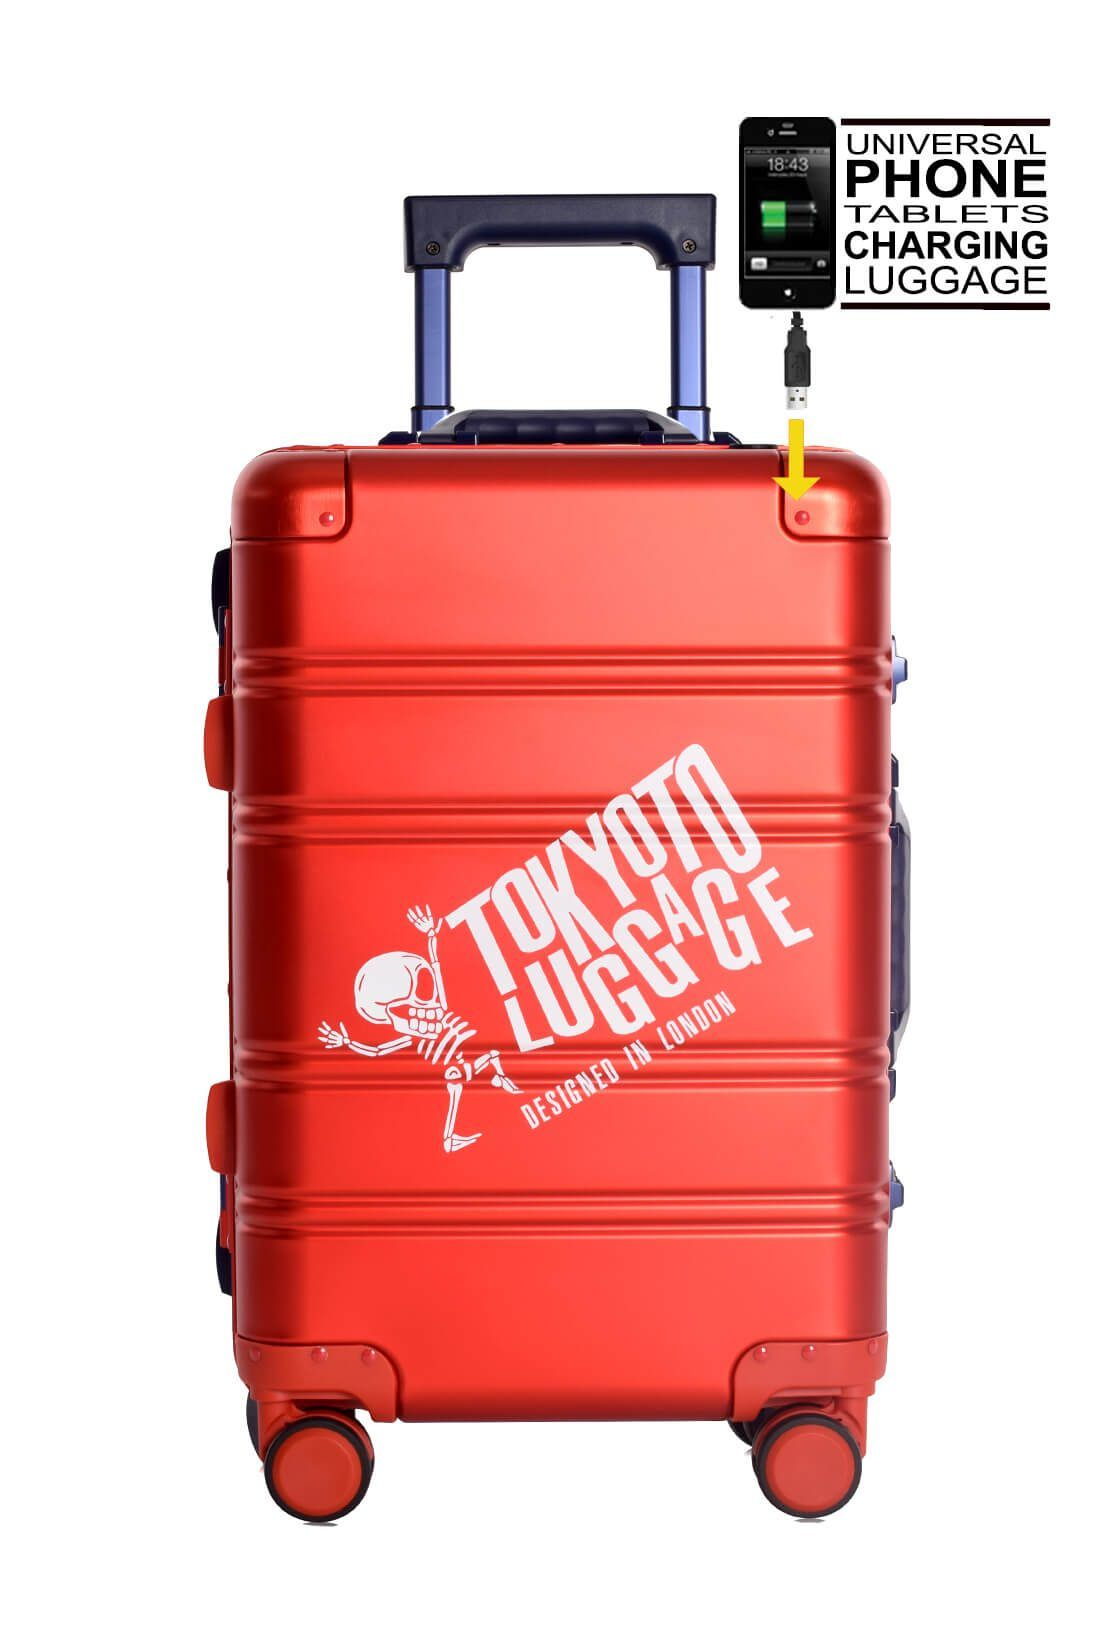 Valise Aluminium Online Cabine Trolley Avec Chargeur Powerbank TOKYOTO LUGGAGE Modelle RED BLUE LOGO 5